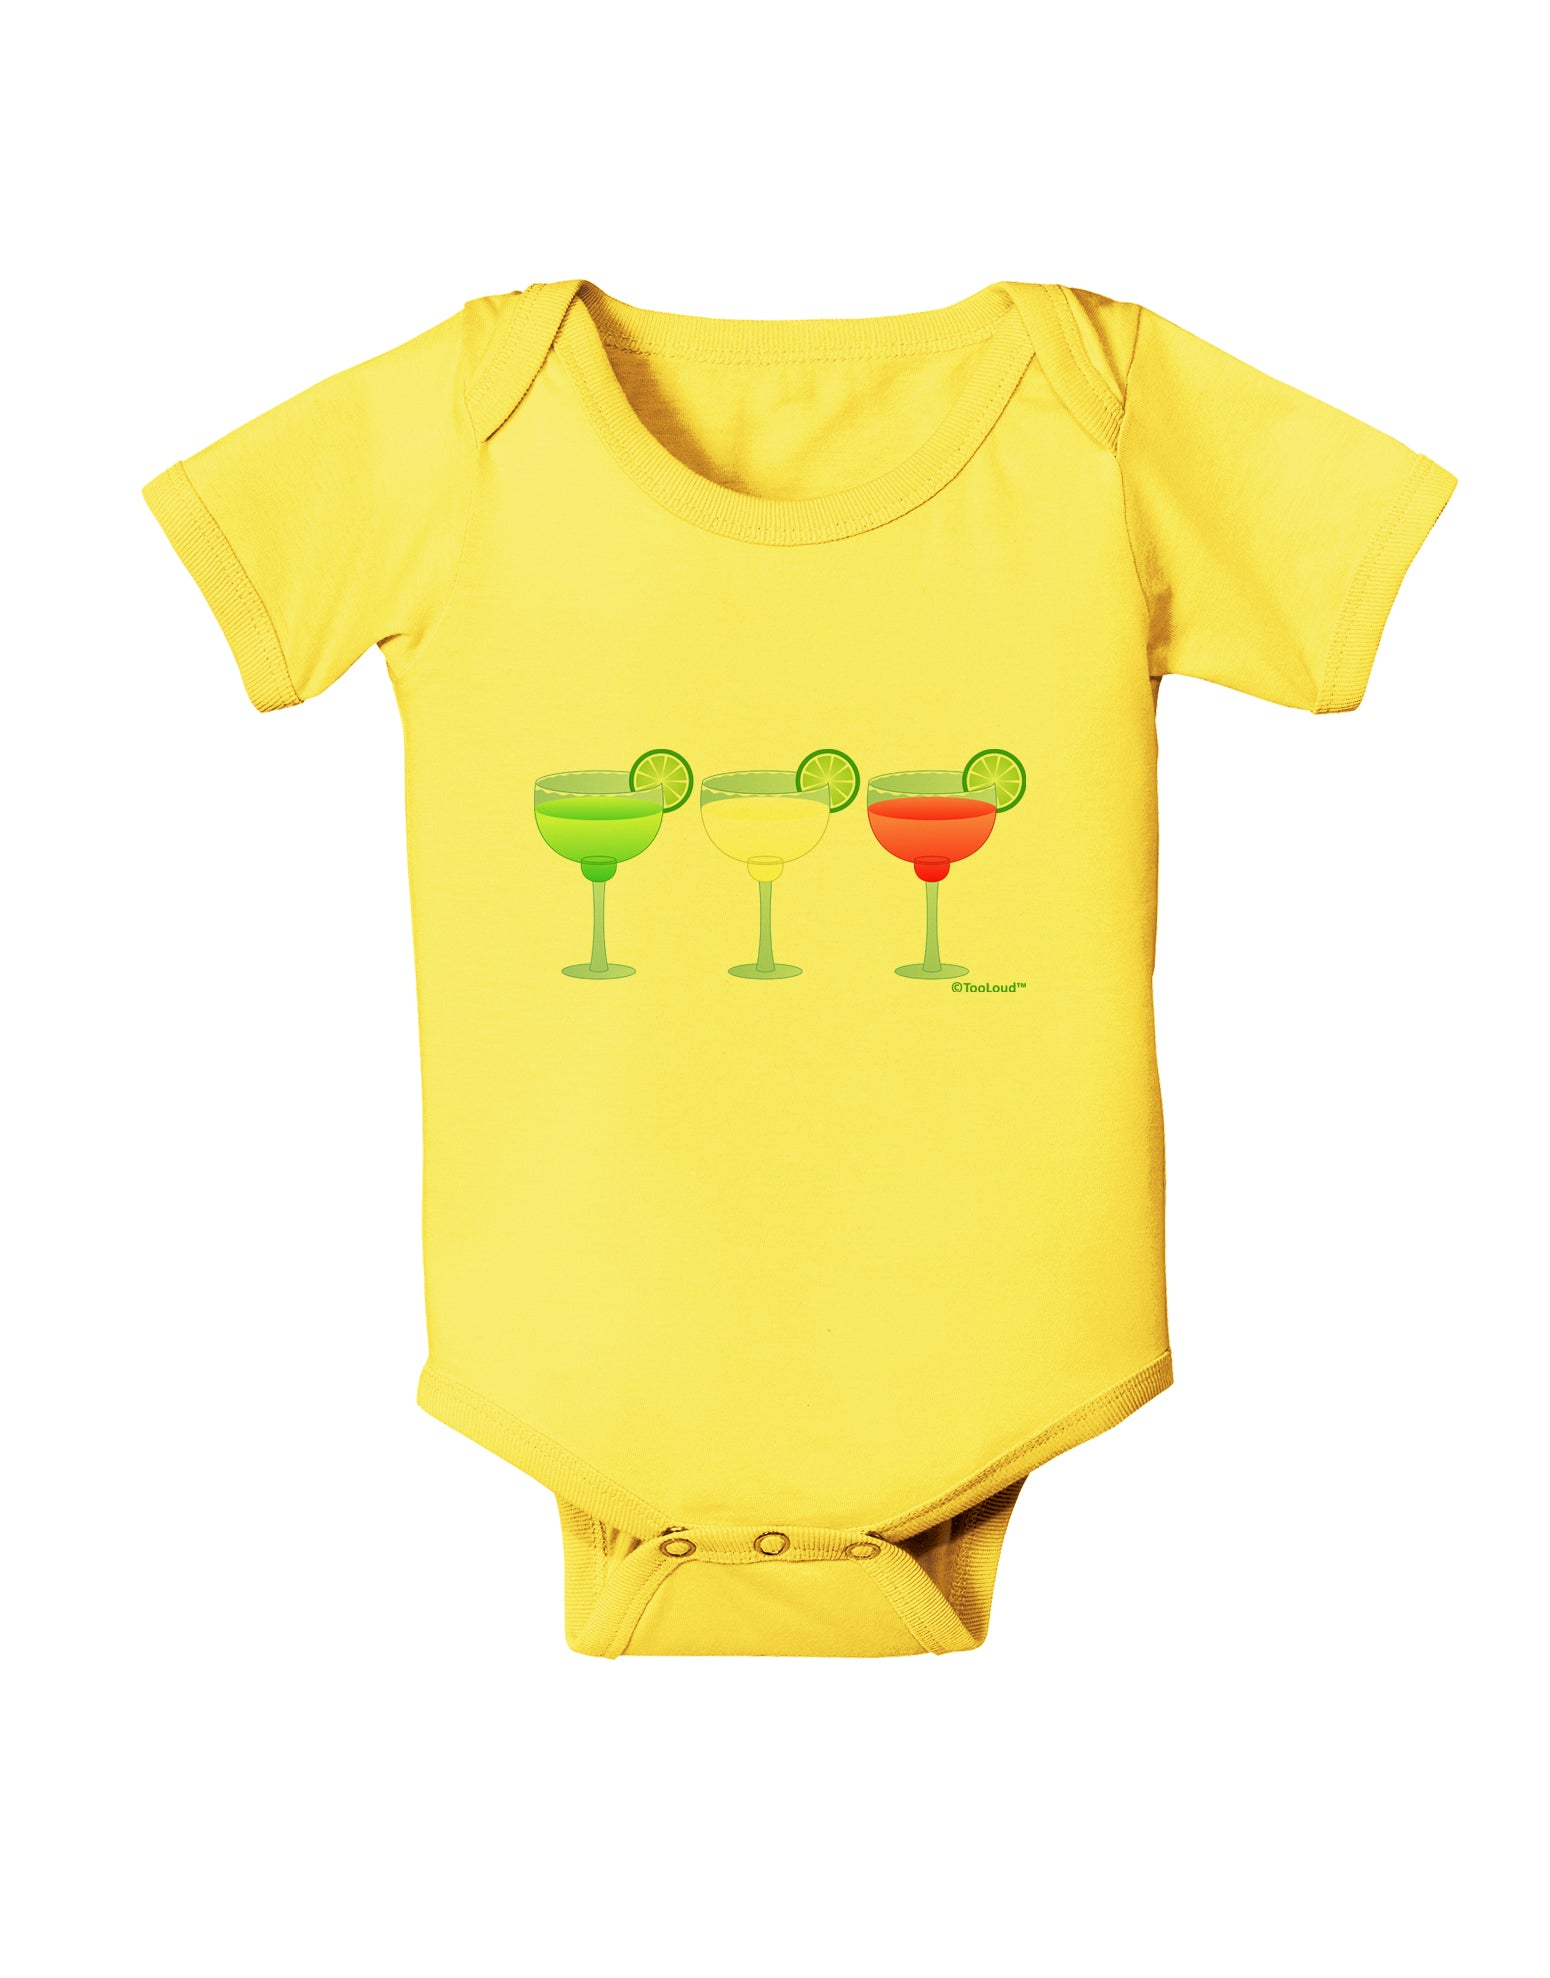 Bachelorette Party Drinking Team Infant T-Shirt Name TOOLOUD Personalized